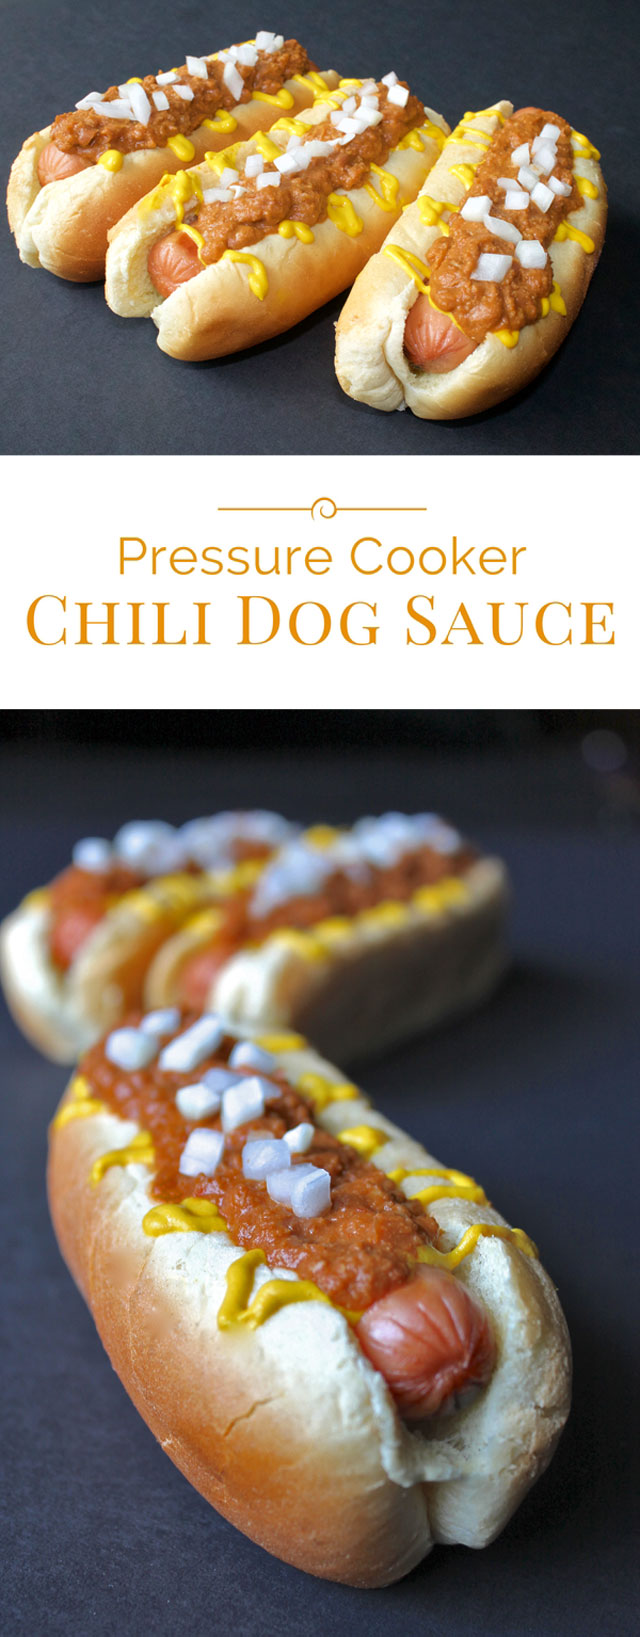 chili-dog-sauce-pressure-cooking-today